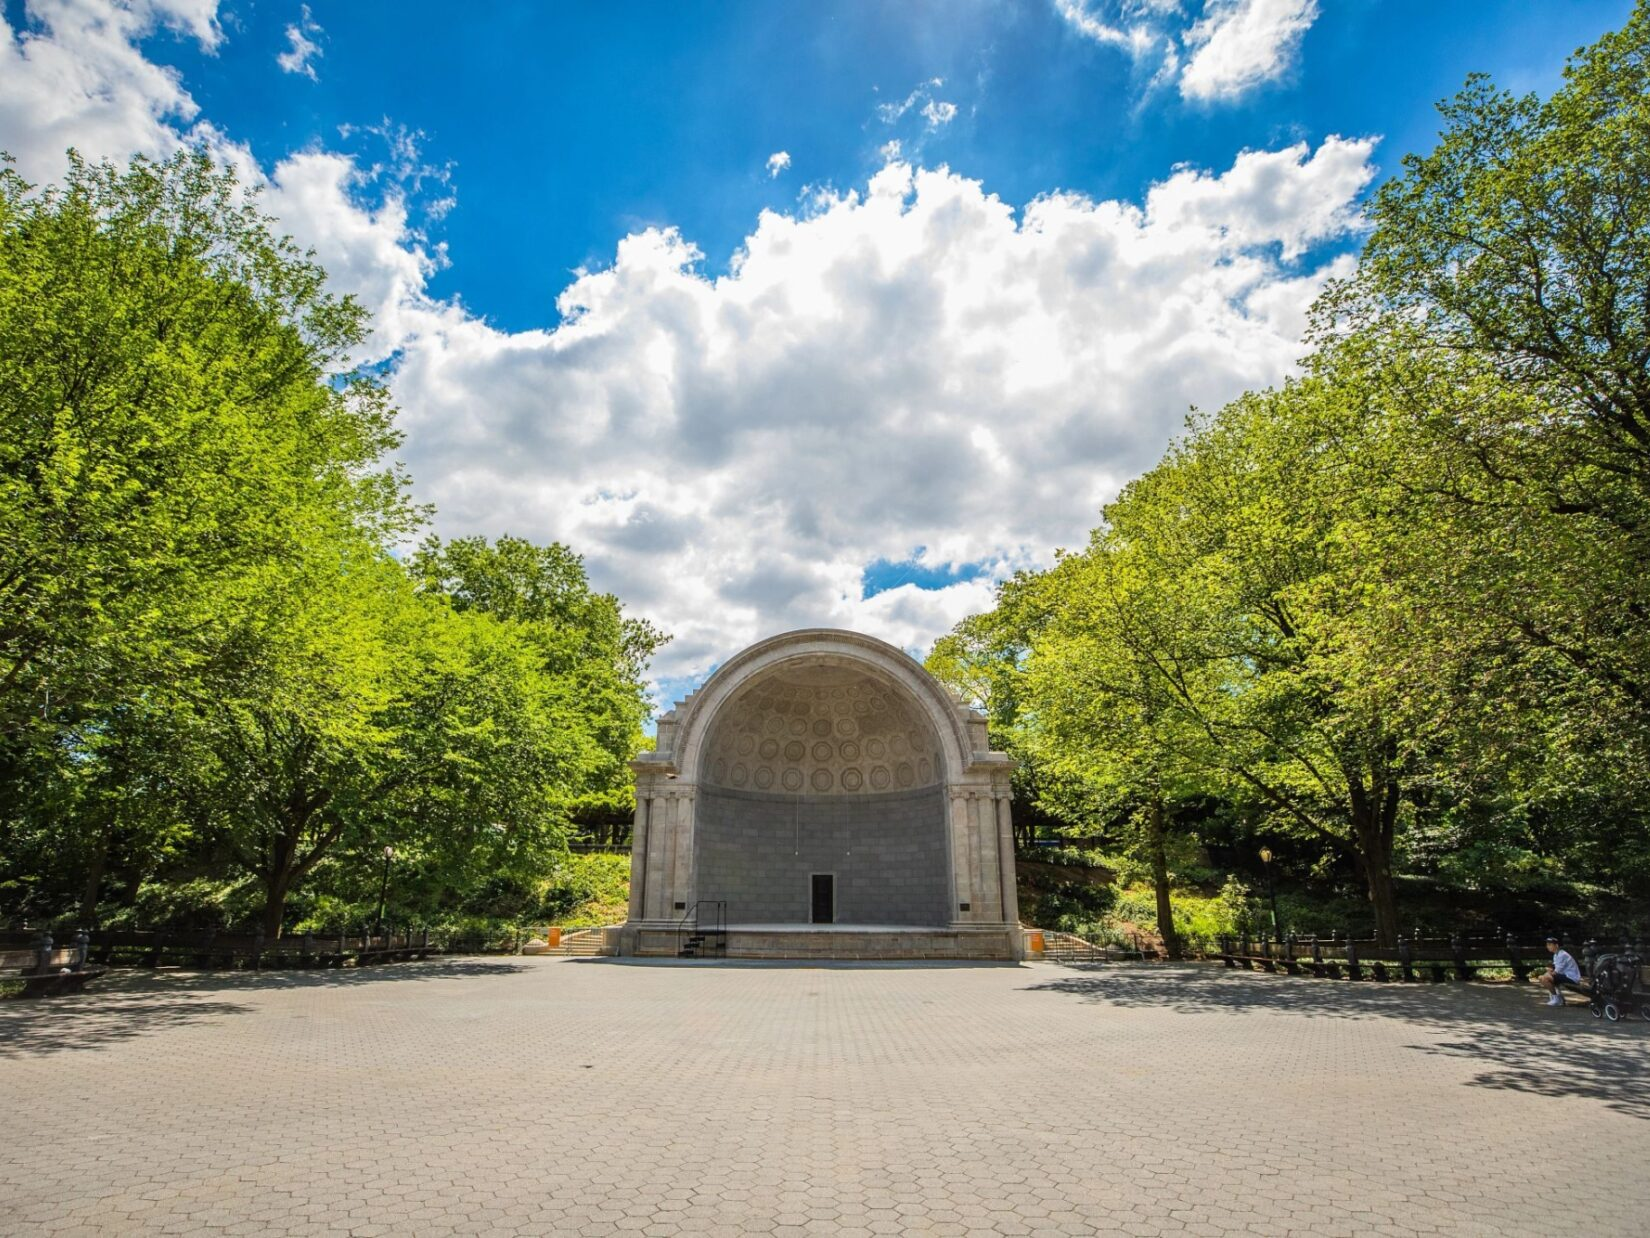 The bandshell is seen from across an empty plaza on a sunlit sping morning